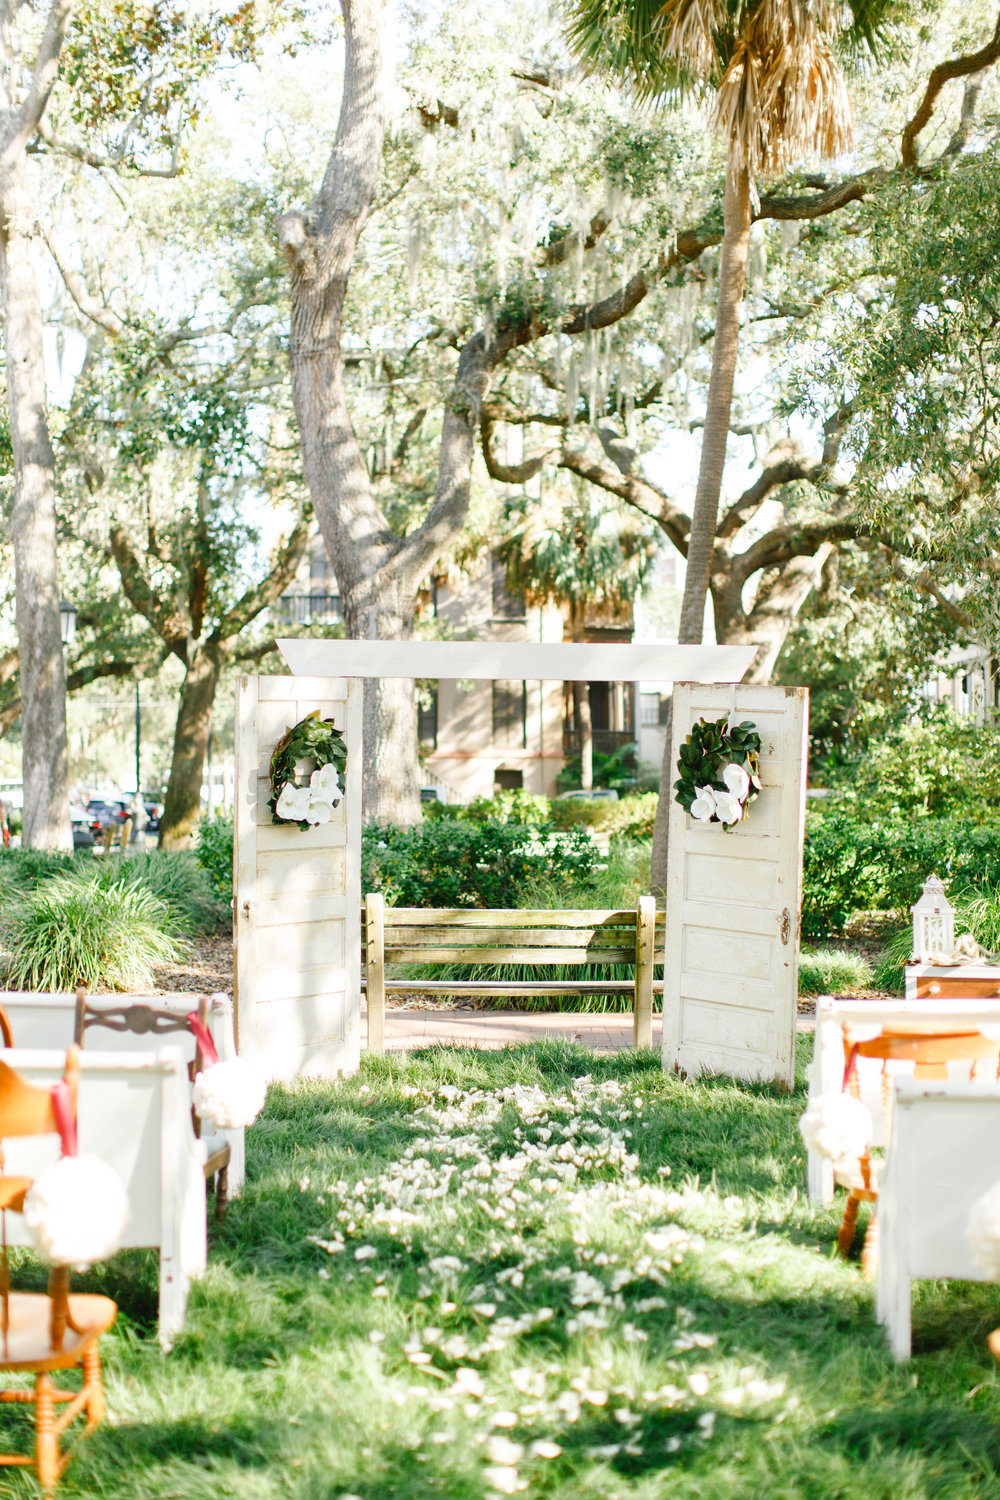 ivory-and-beau-bridal-boutique-aubrie-and-adam-the-happy-bloom-photography-savannah-wedding-planner-savannah-wedding-coordinator-15.jpg